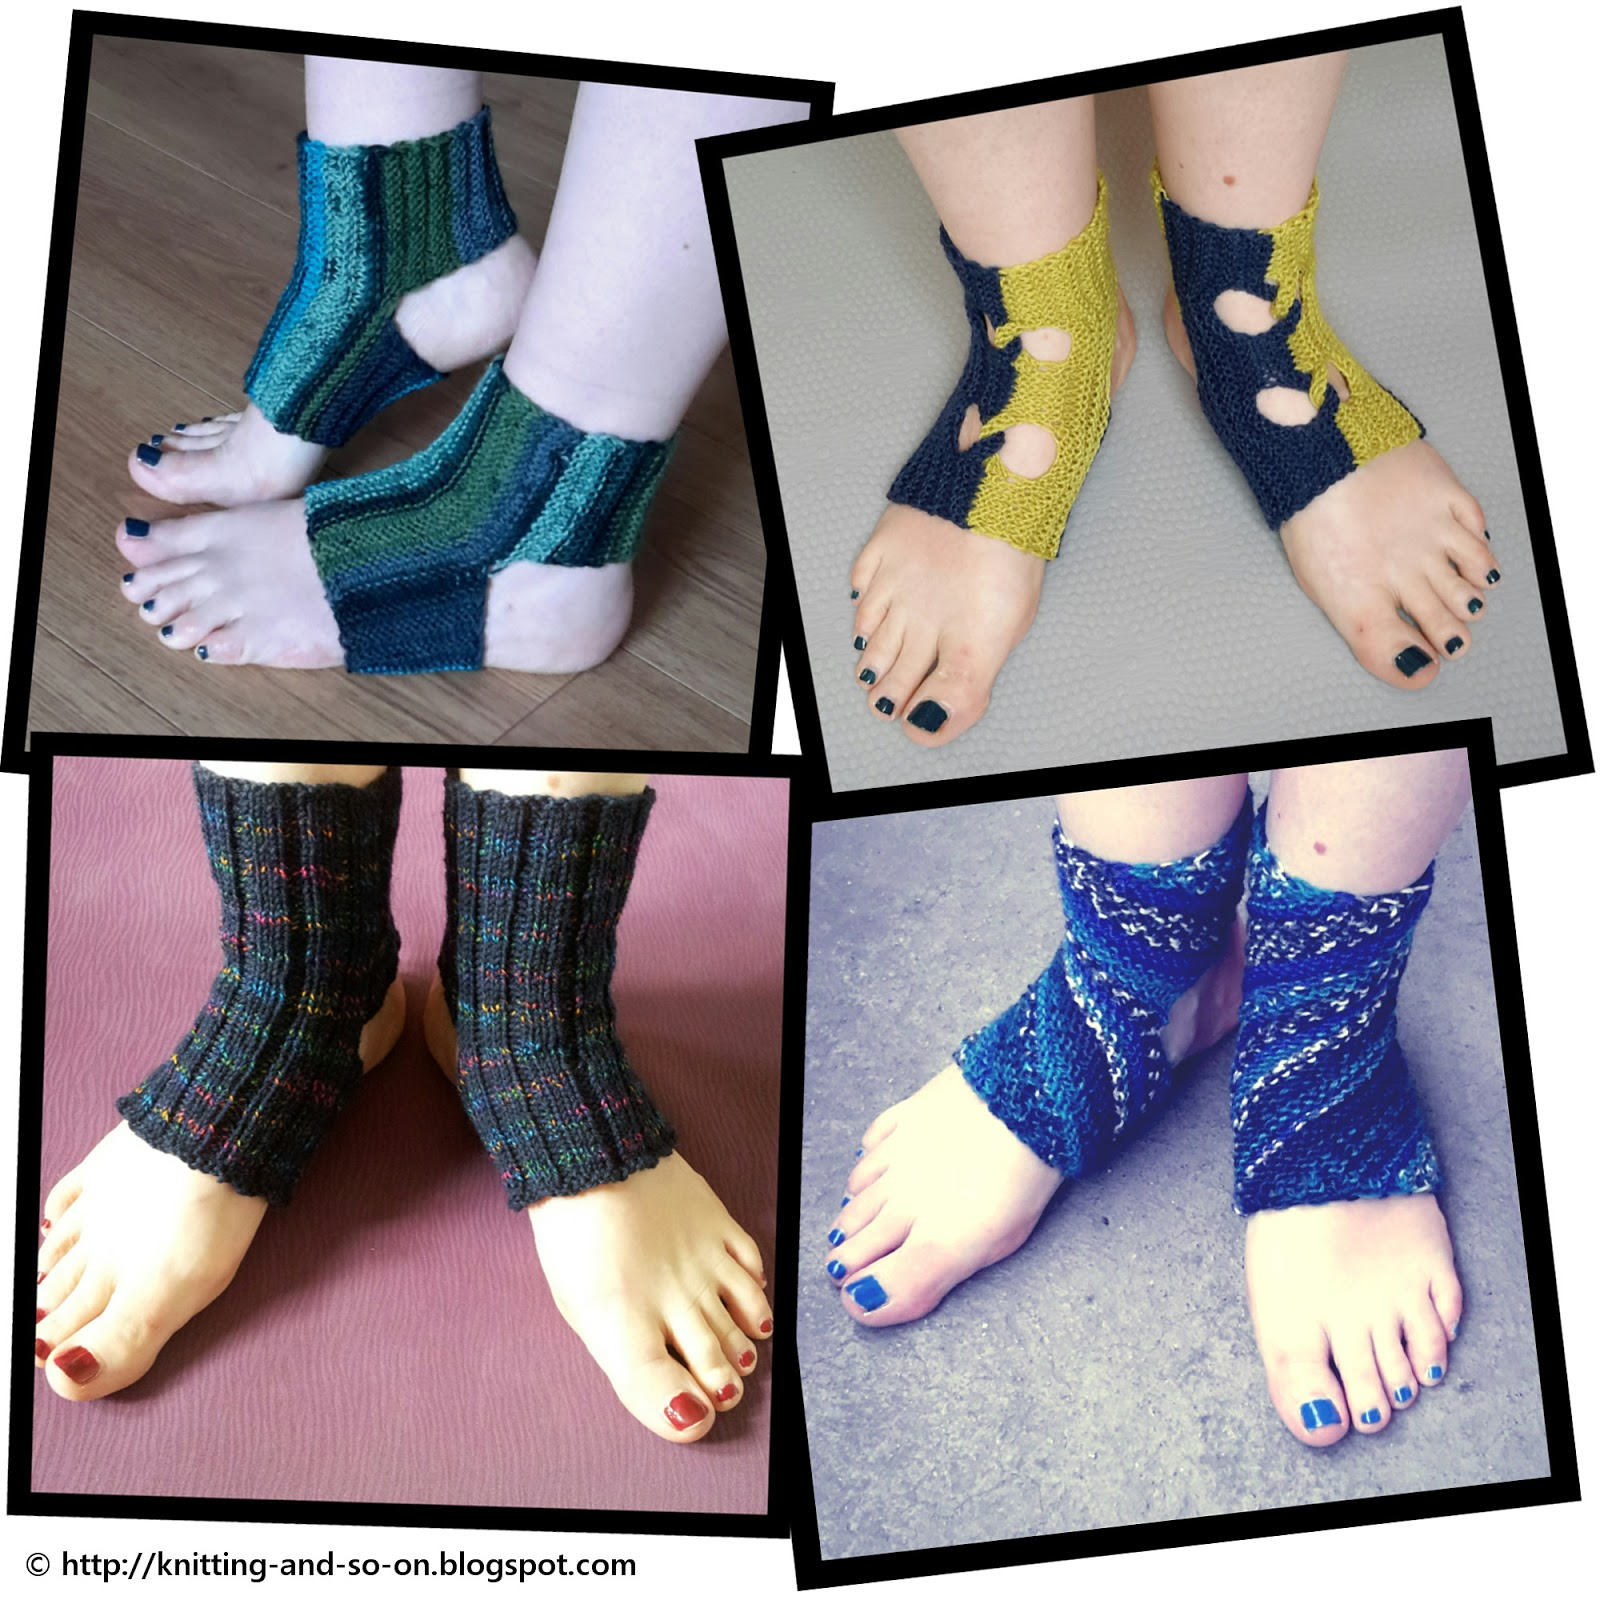 Easy Knitting Pattern For Yoga Socks : Knitting and so on: Patterns